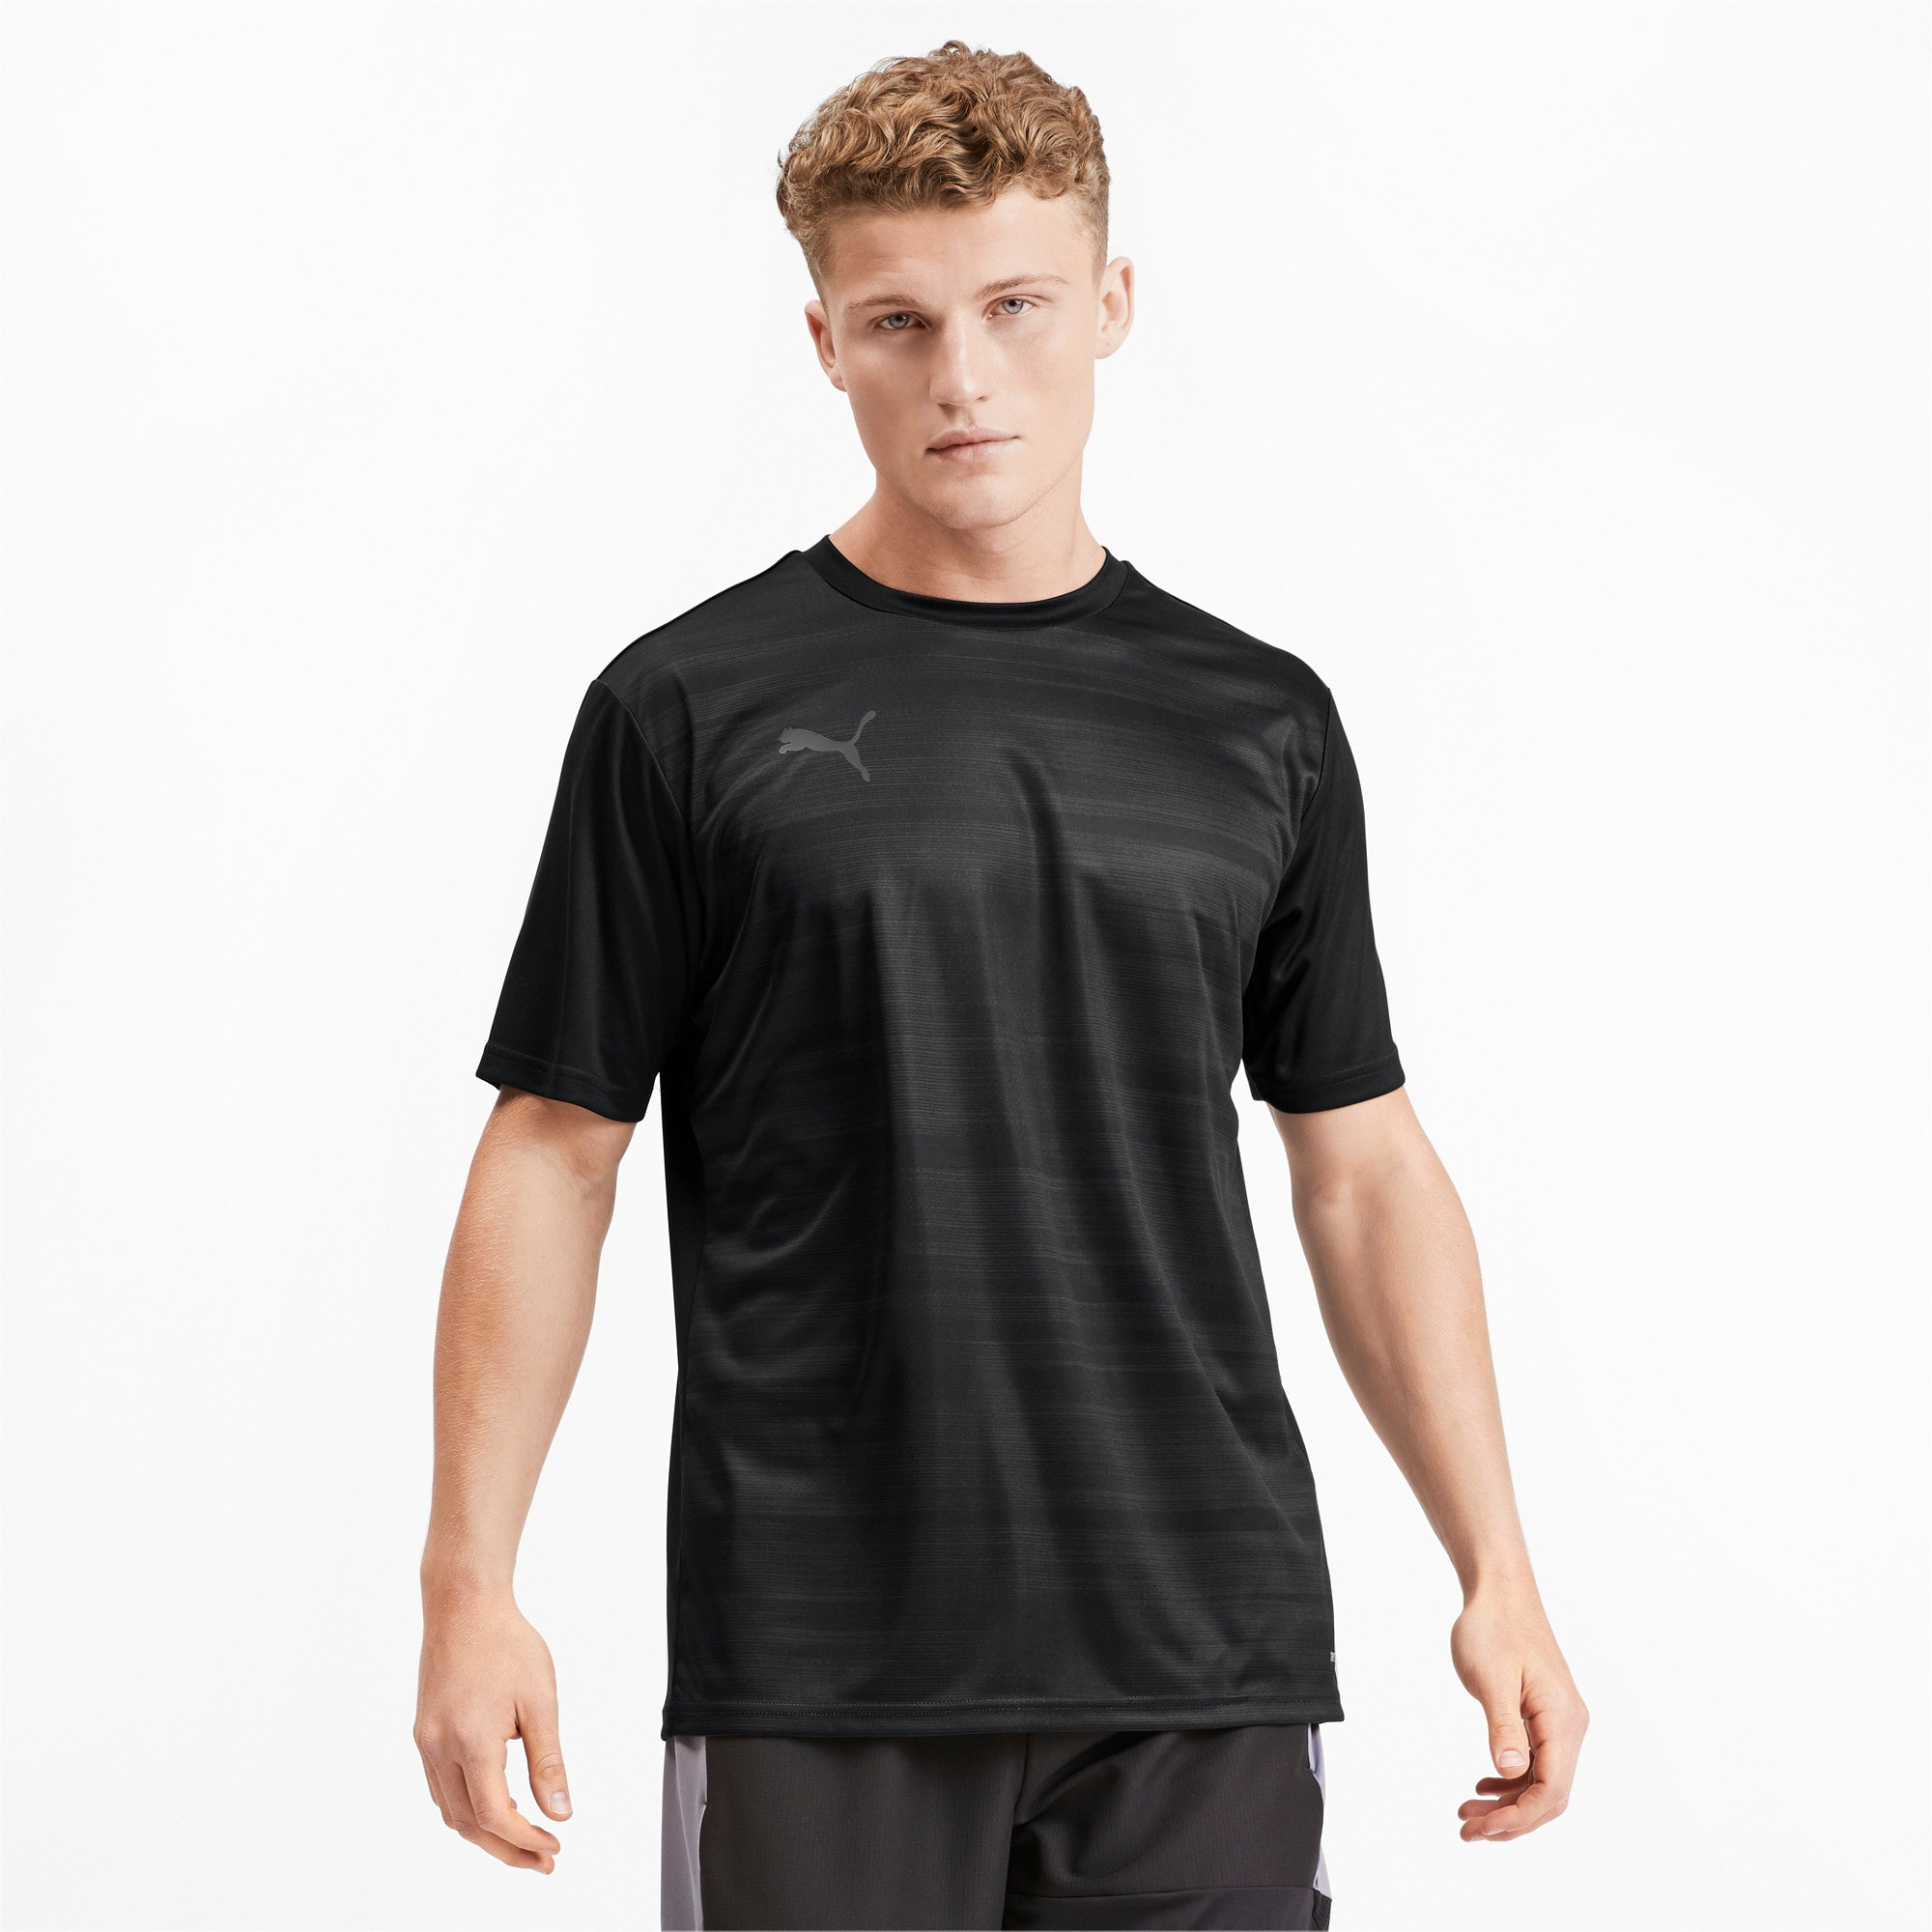 Thumbnail 1 of Core Graphic Men's Shirt, Puma Black-Phantom Black, medium